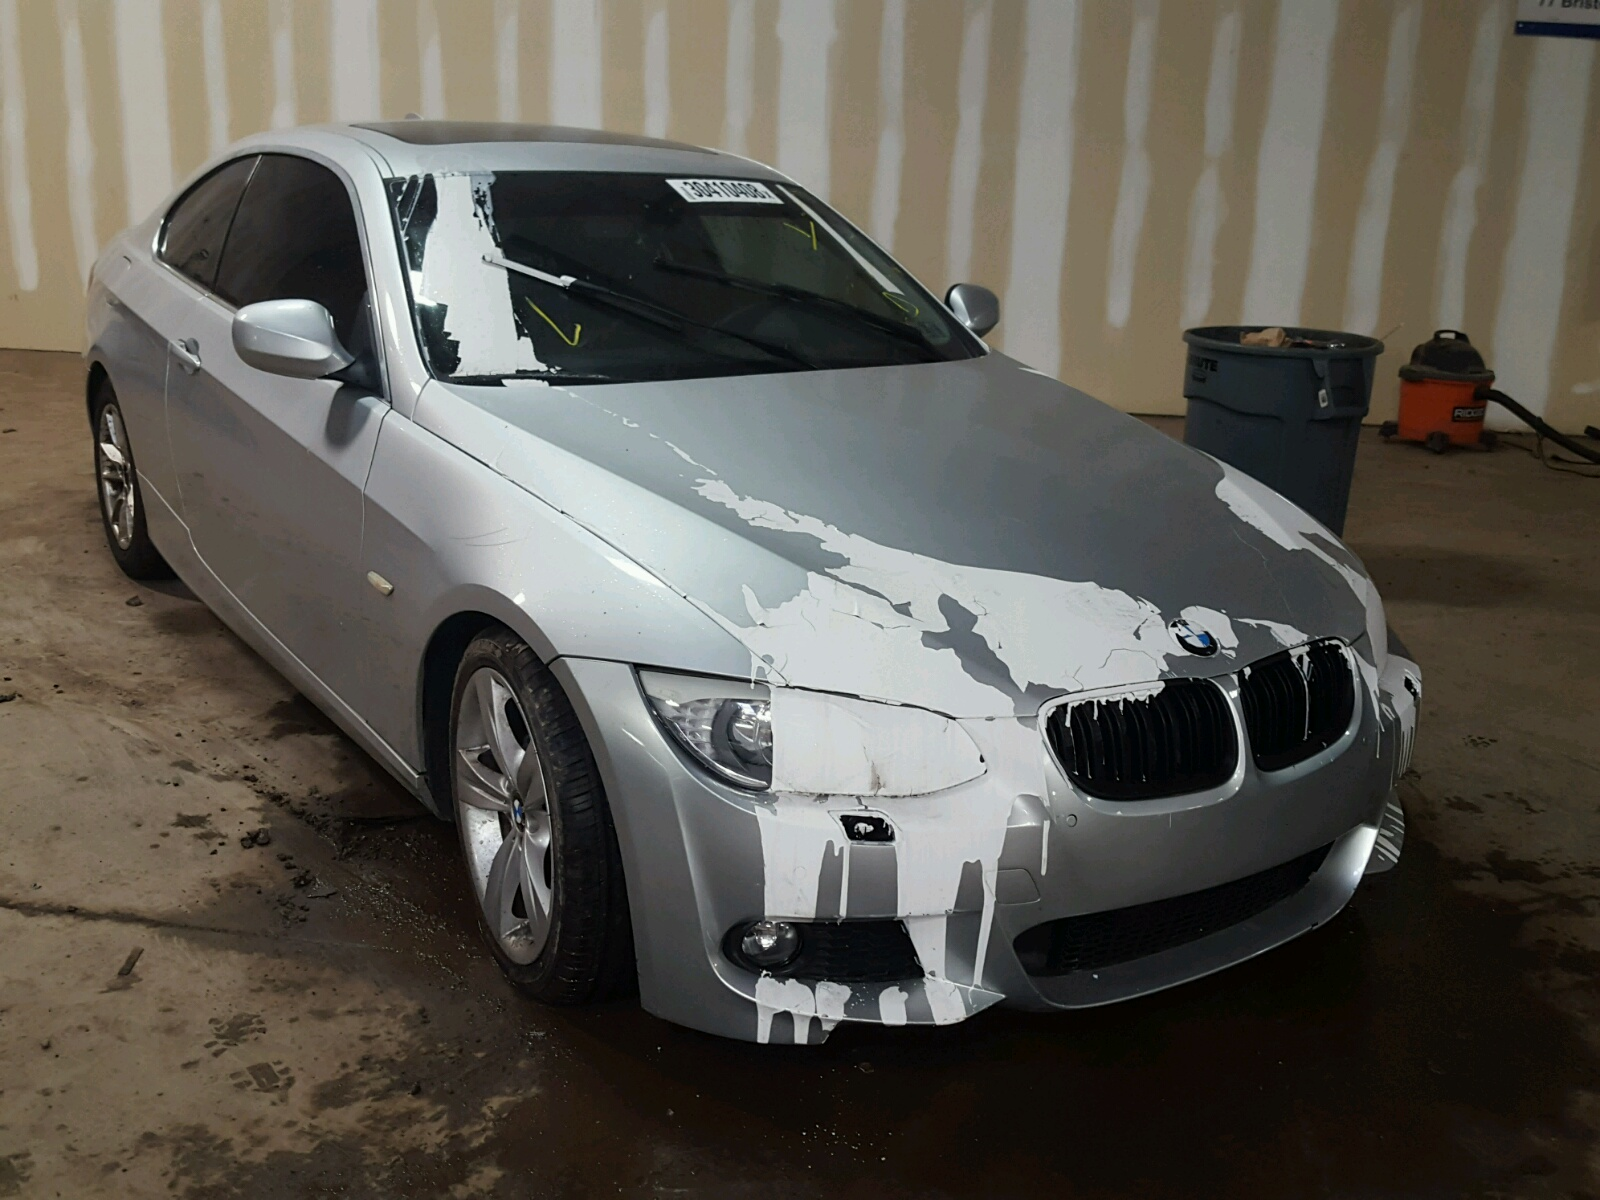 Auto Auction Ended On Vin Wba3a5c50cf344487 2012 Bmw 328i In Tn Nashville